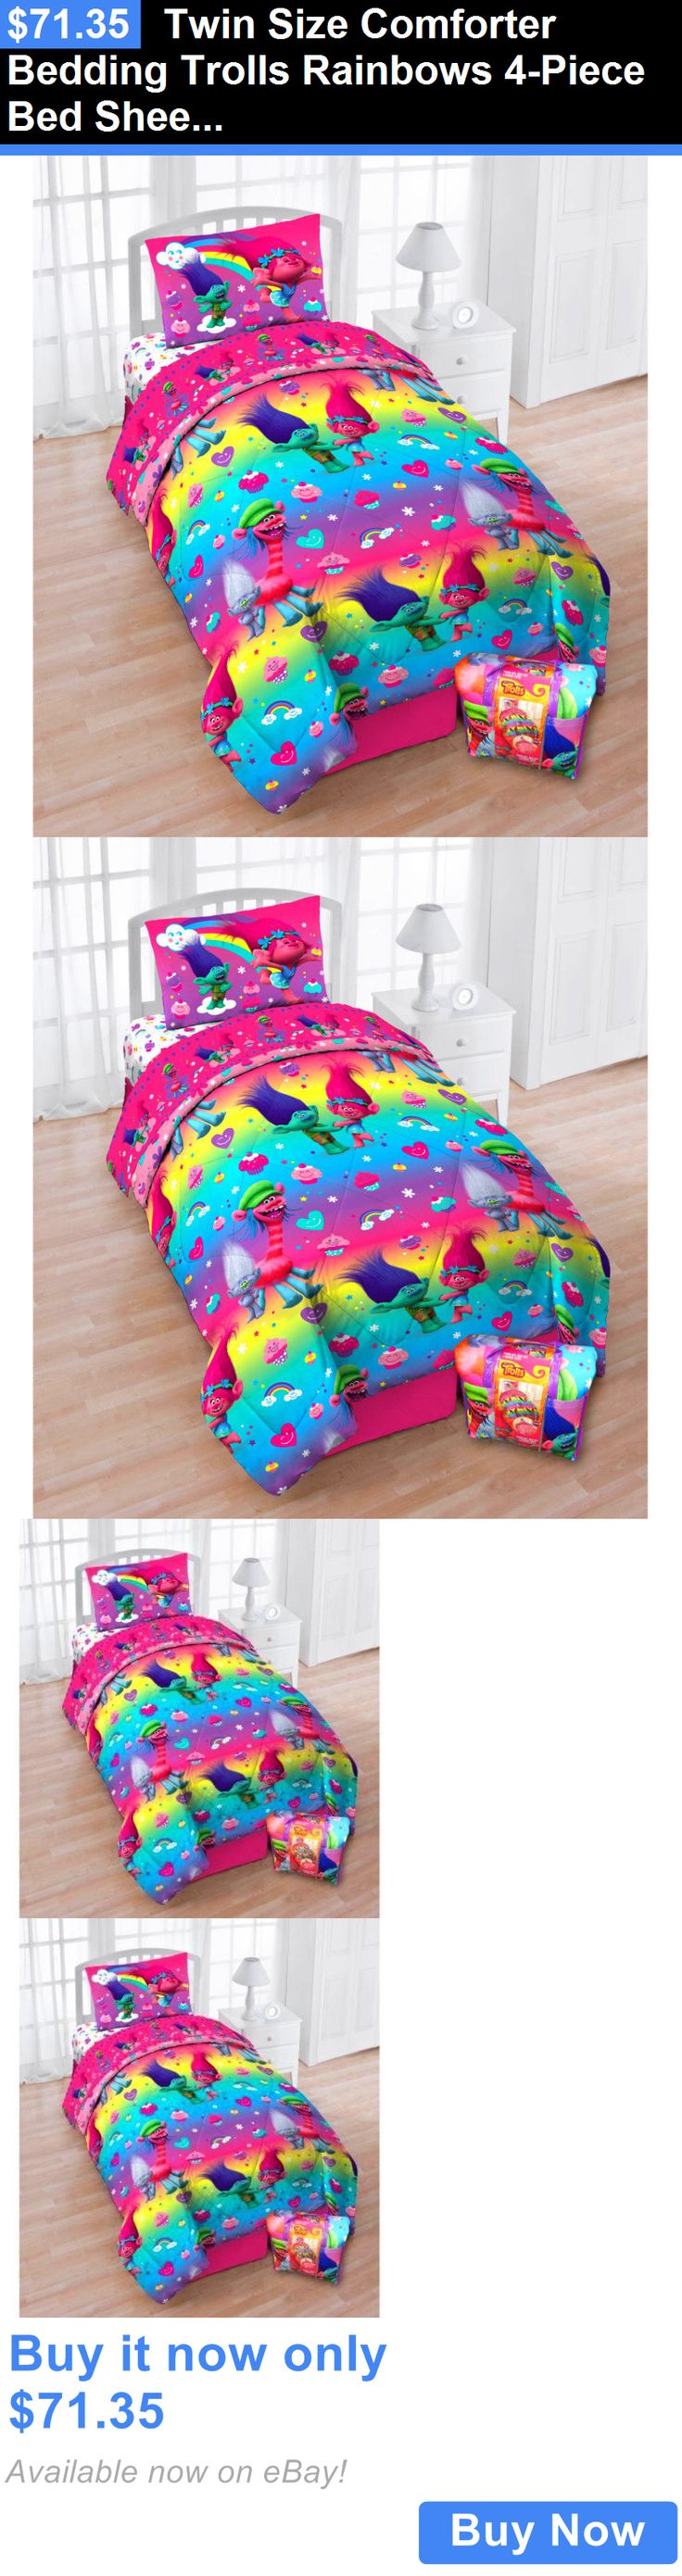 Kids at Home: Twin Size Comforter Bedding Trolls Rainbows 4-Piece Bed Sheet Set Girls Bedroom BUY IT NOW ONLY: $71.35